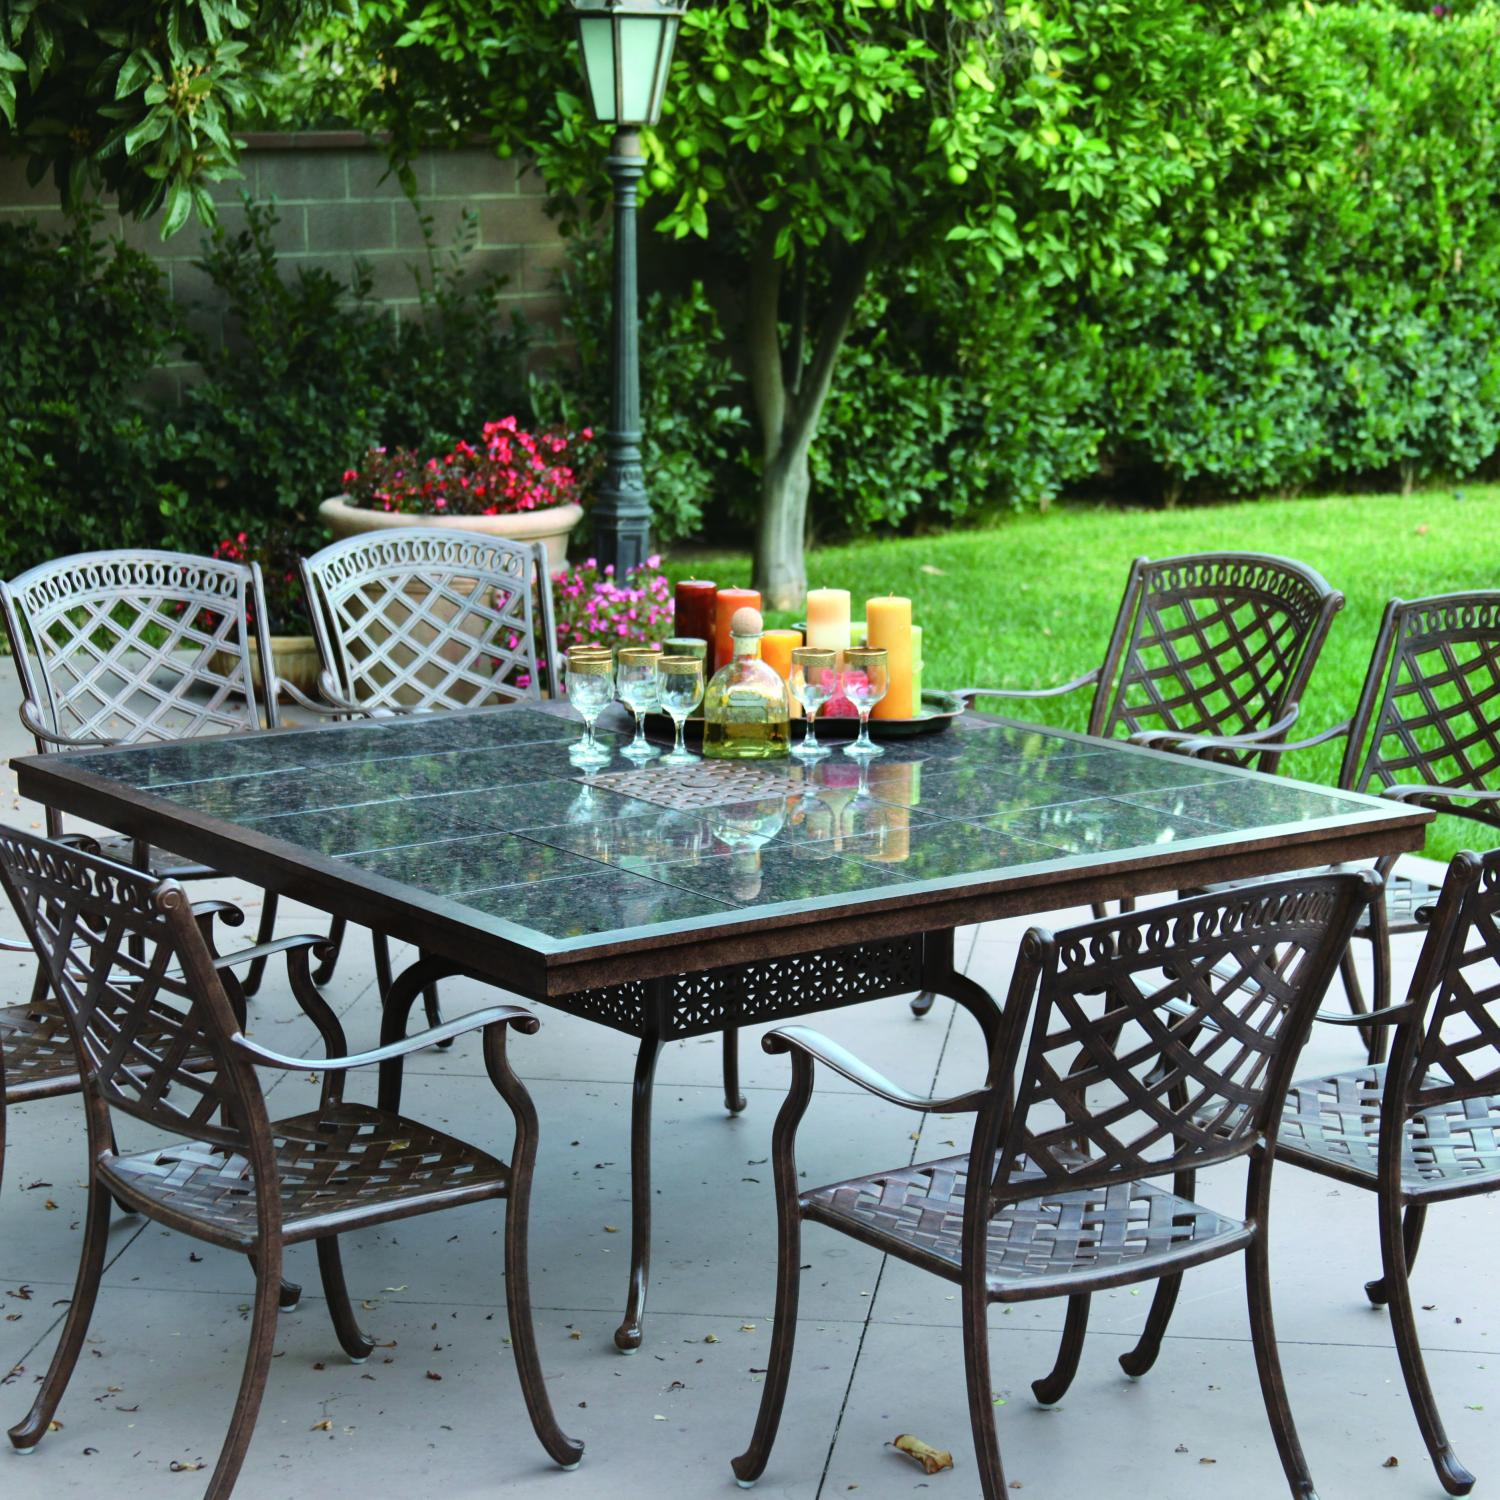 Darlee Sedona 8-person Cast Aluminum Patio Dining Set With Granite Top Table - Antique Bronze / Brown Granite Tile at Sears.com